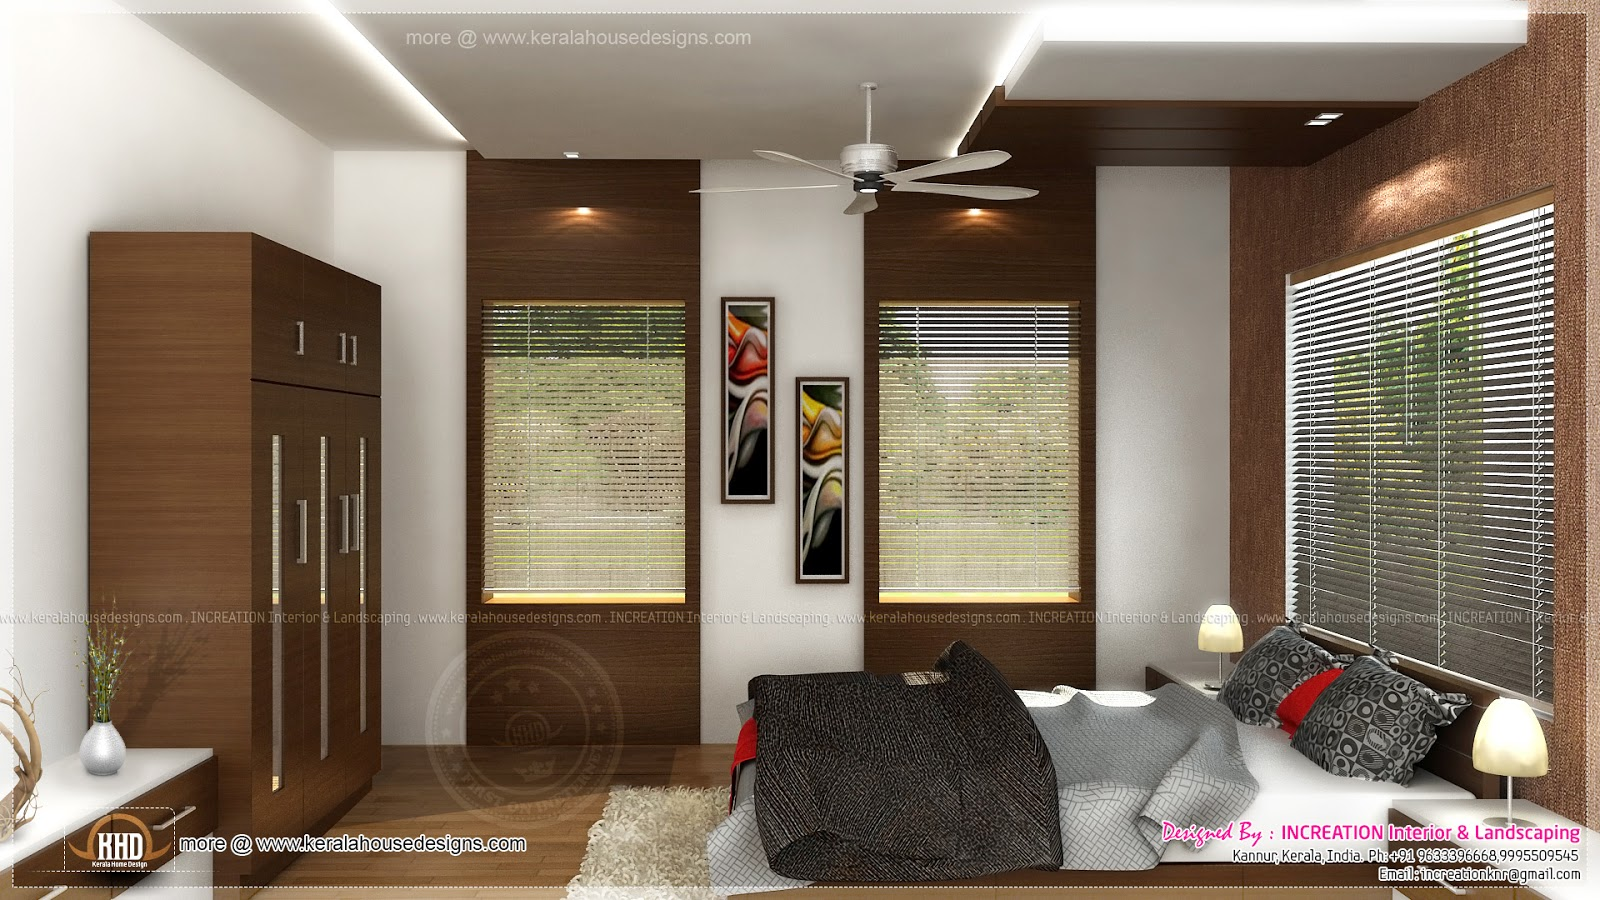 Interior designs from kannur kerala home kerala plans for Kerala homes interior designs